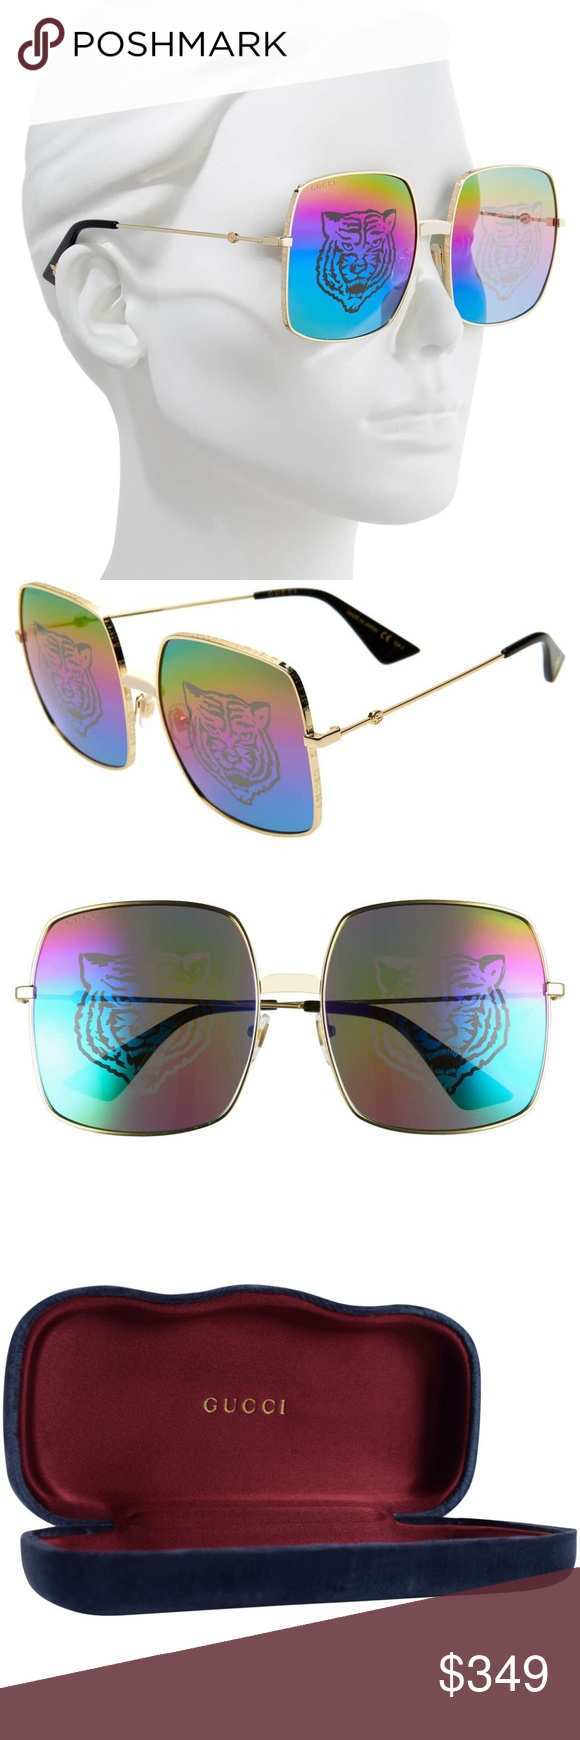 Gucci GG0414S 004 Sunglasses Brand Gucci Style Number